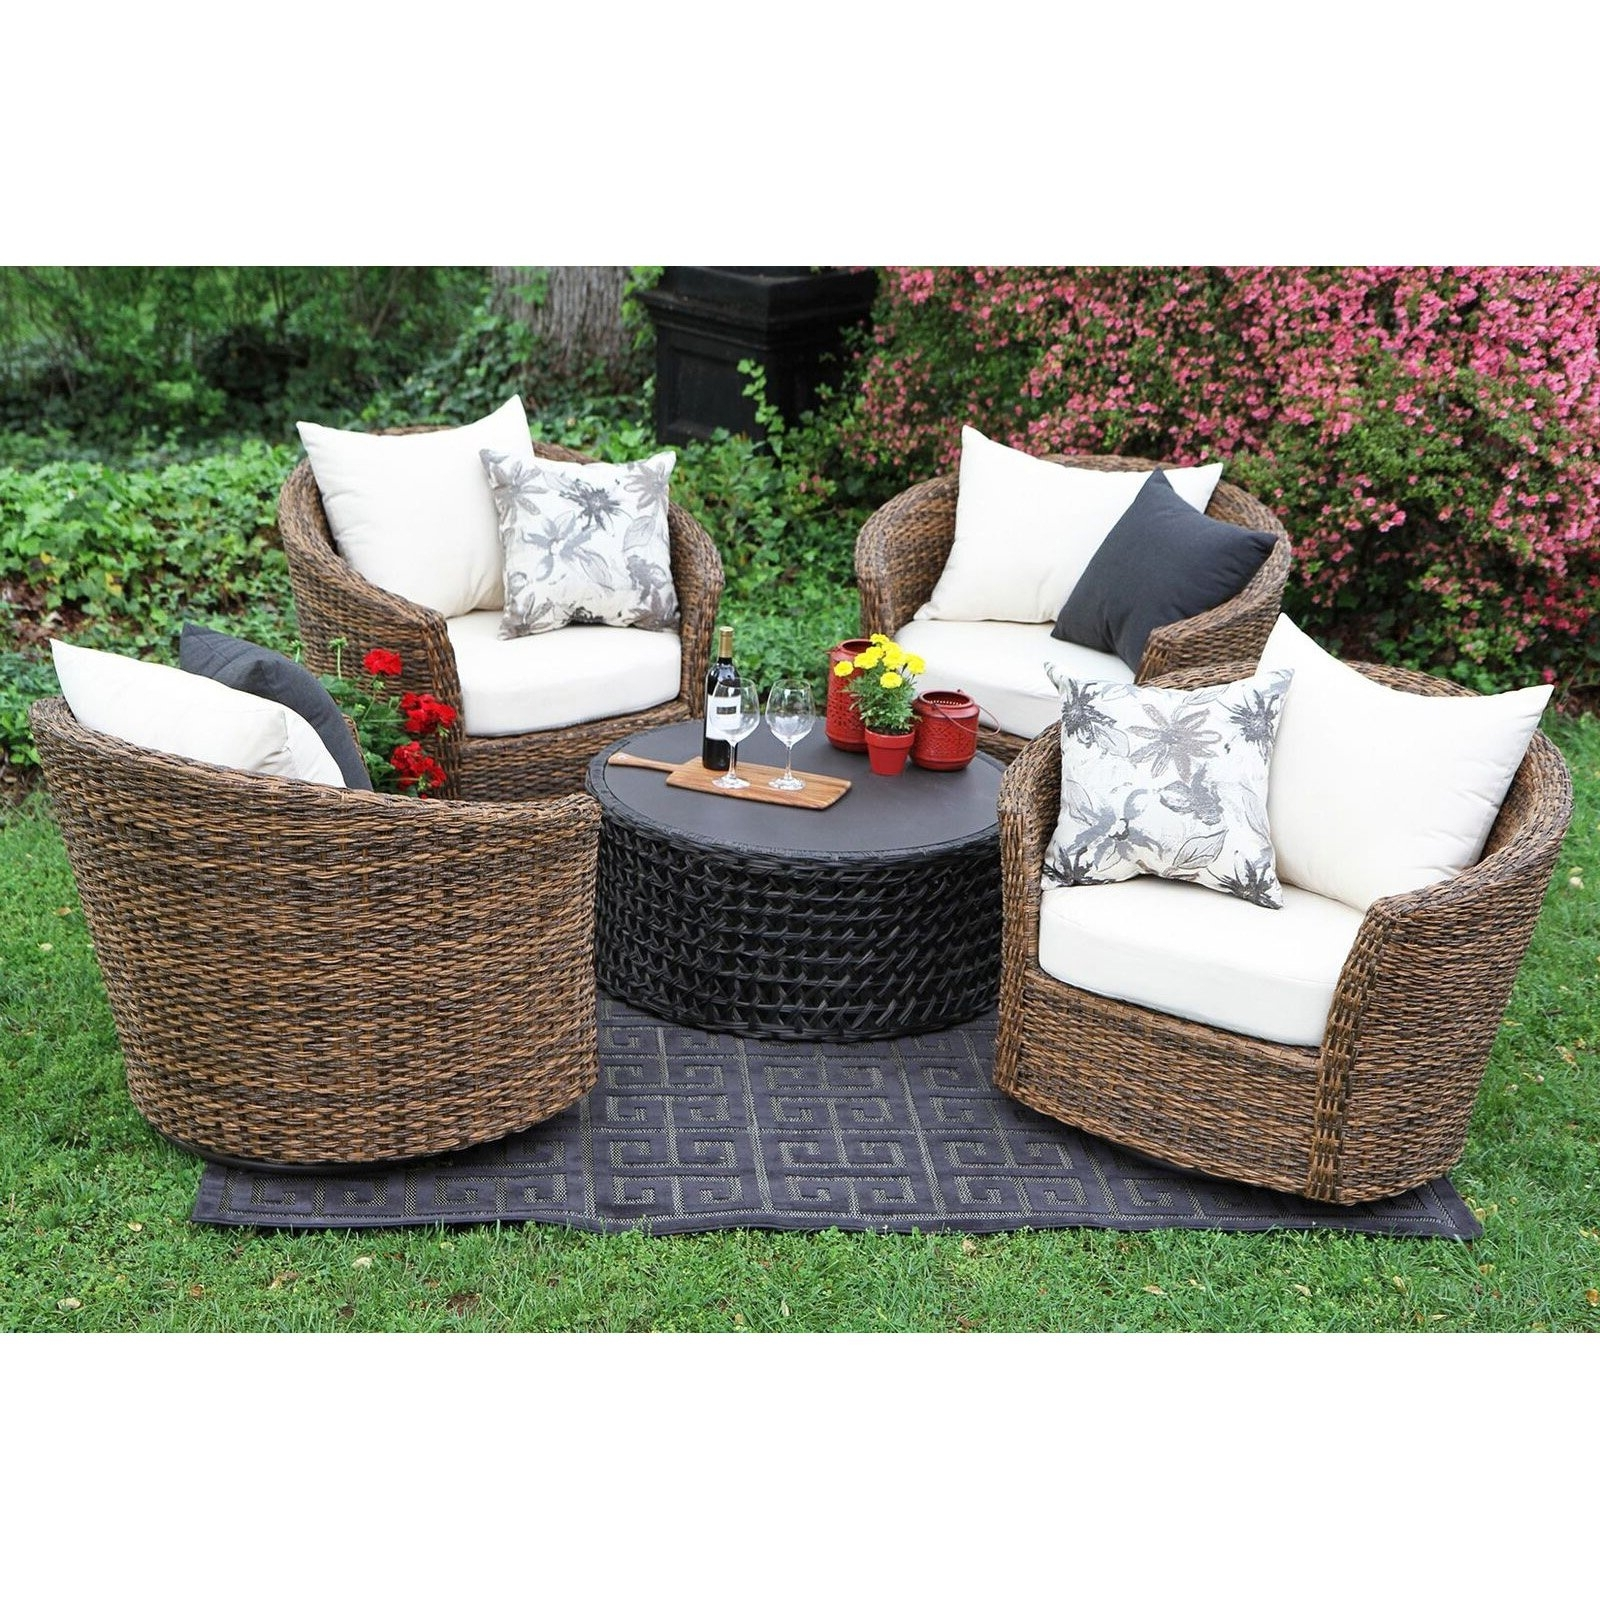 Patio : Kroger Patio Furniture Kroger Outdoor Furniture Pertaining To Latest Patio Conversation Sets With Swivel Chairs (View 2 of 15)